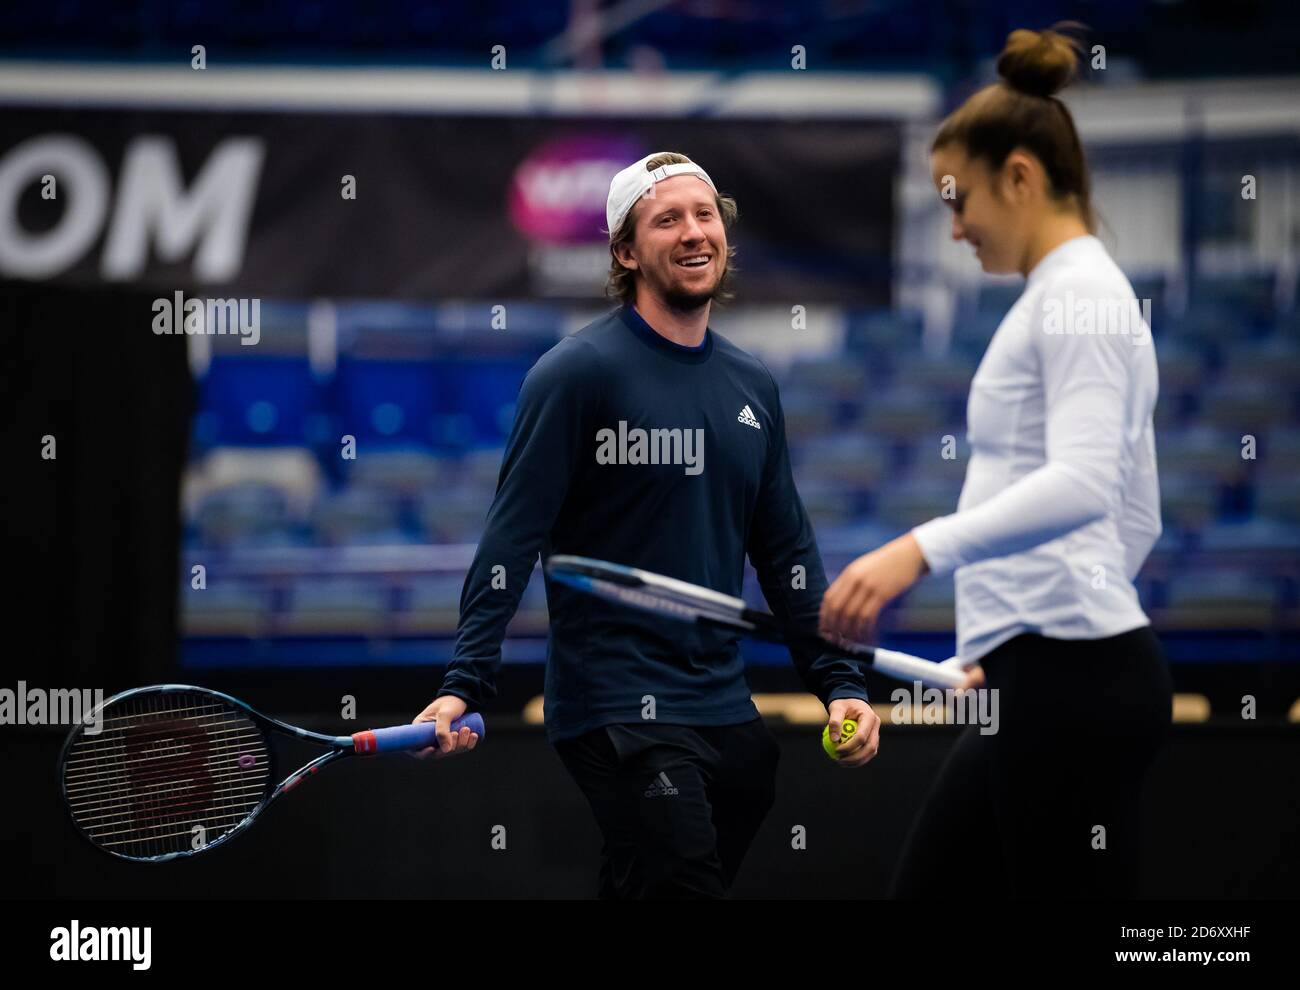 om Hill during practice with Maria Sakkari at the 2020 J&T Banka Ostrava Open WTA Premier tennis tournament on October 17, 2020 in Ostrava, Czech Rep Stock Photo